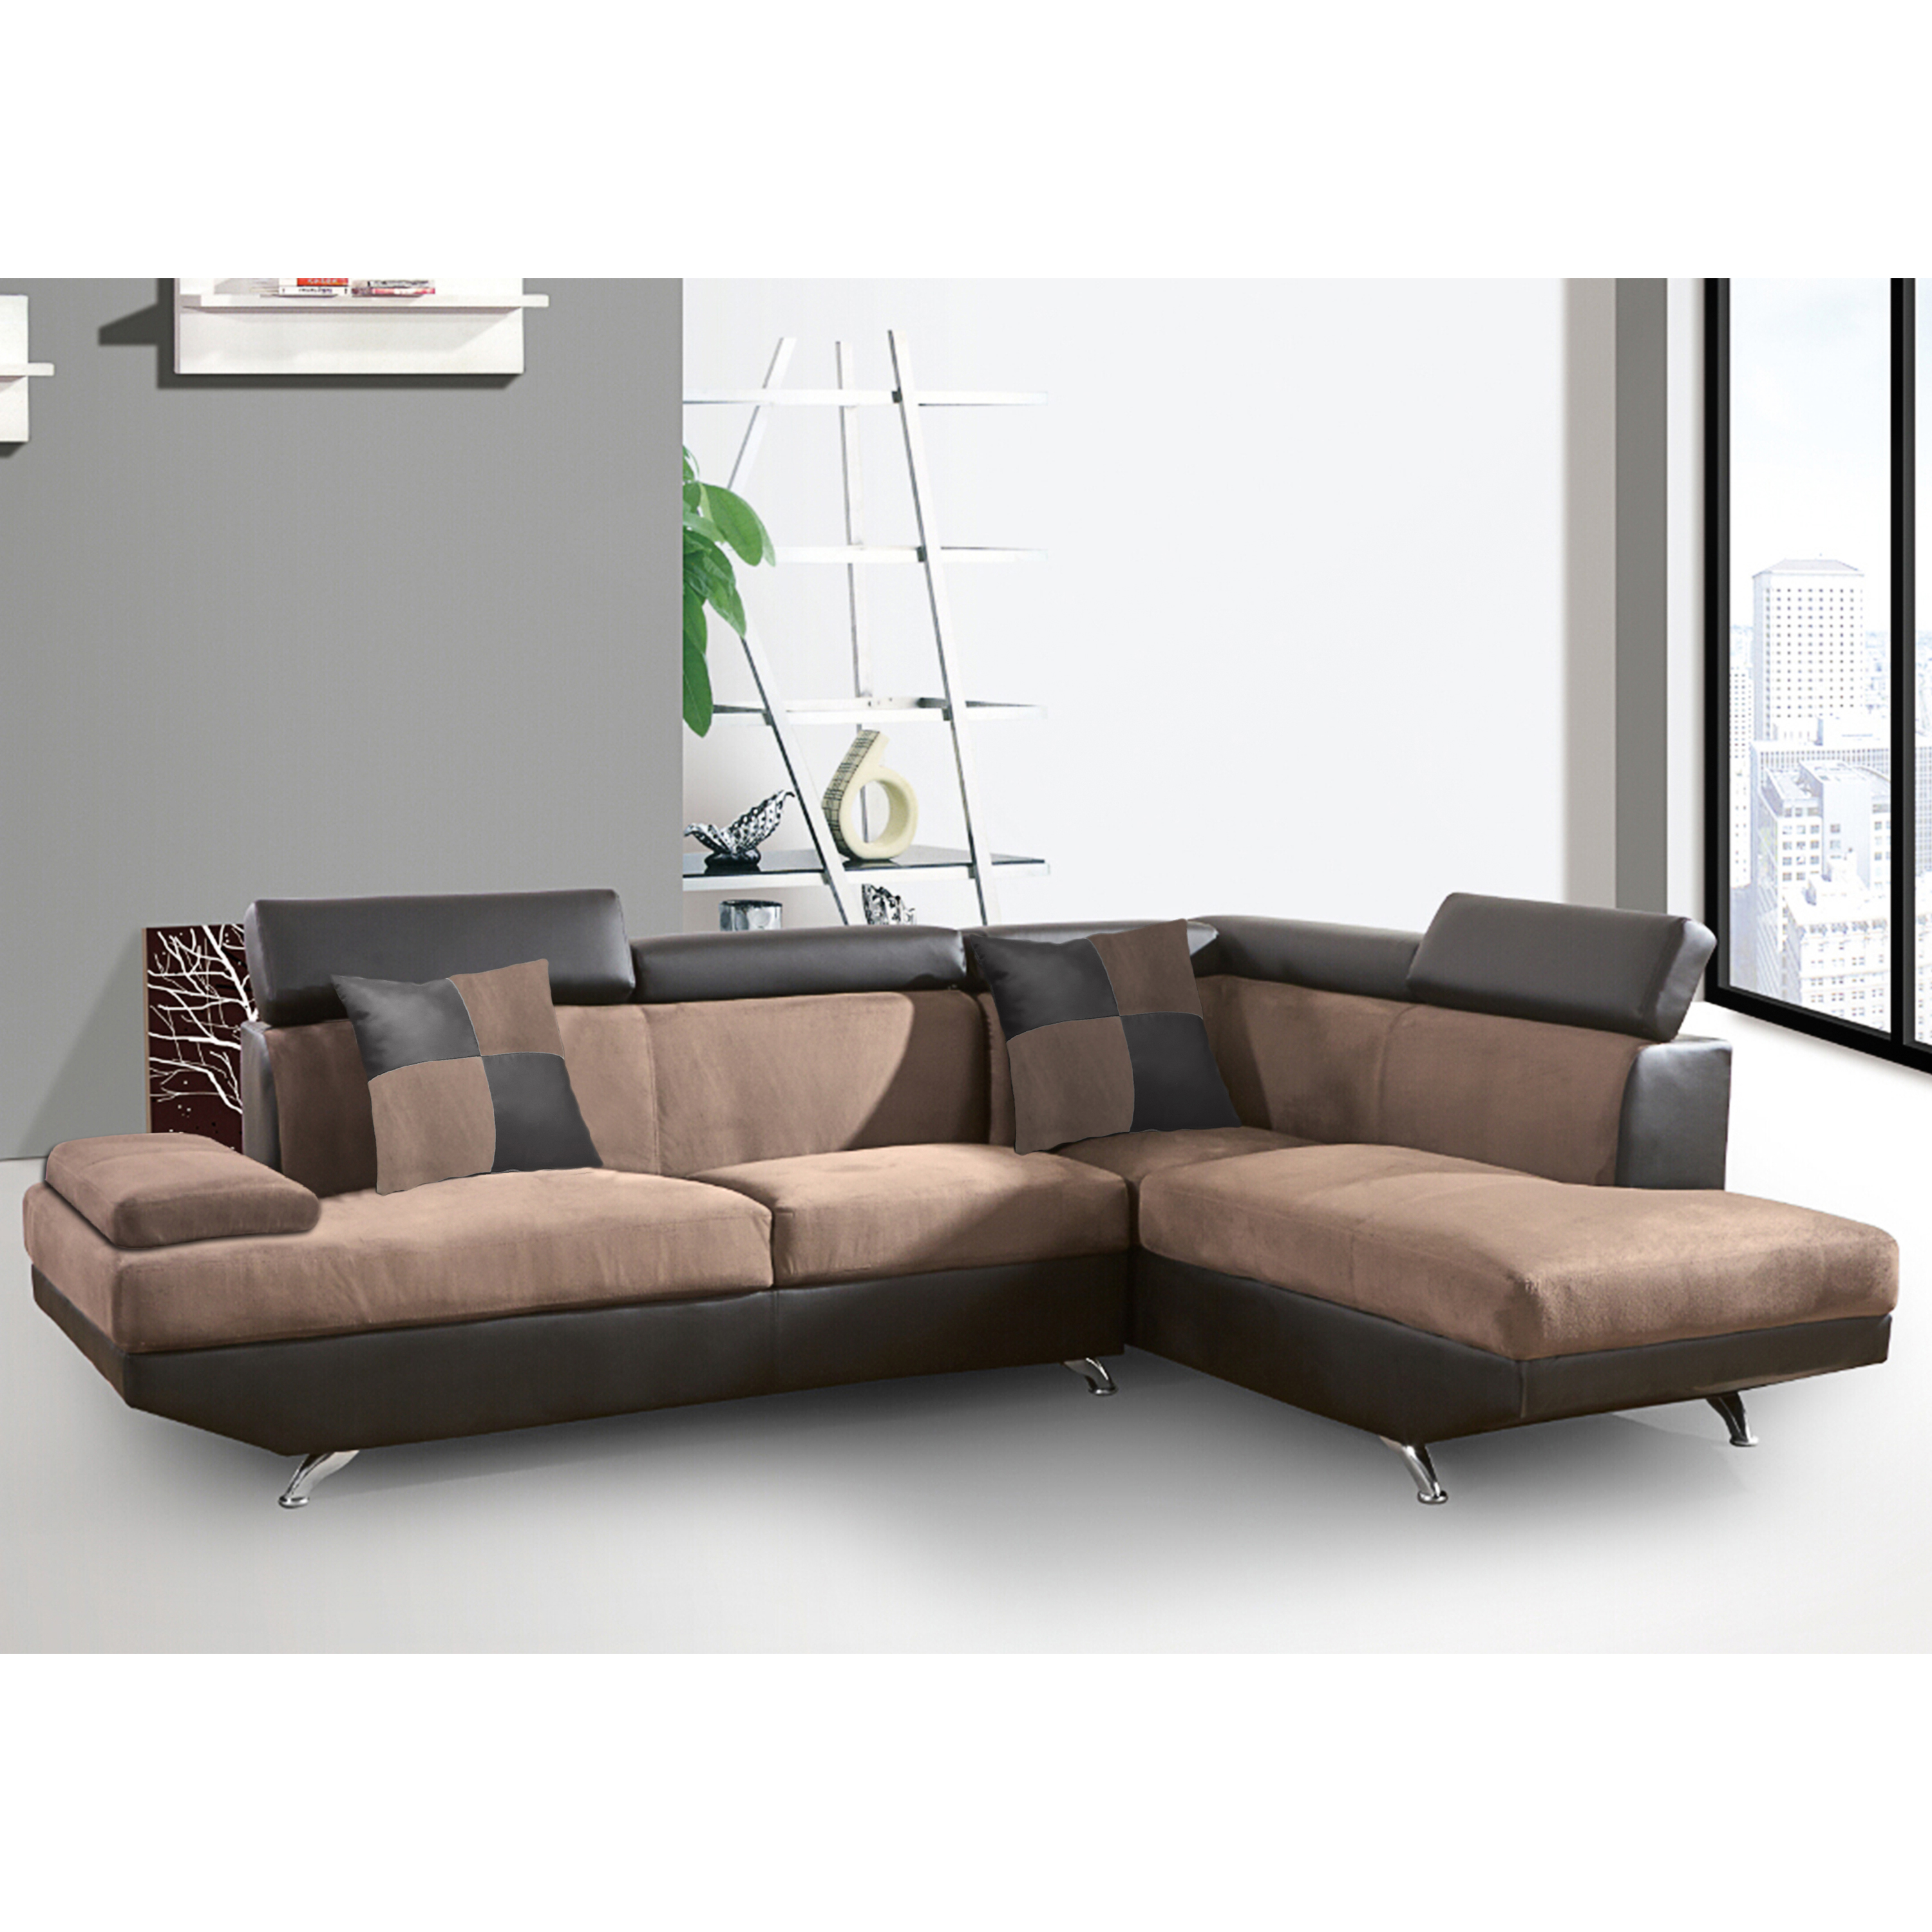 Best Master Furniture's Laura 2 Pcs Contemporary Living Room Right Facing Sectional by Best Master Furniture